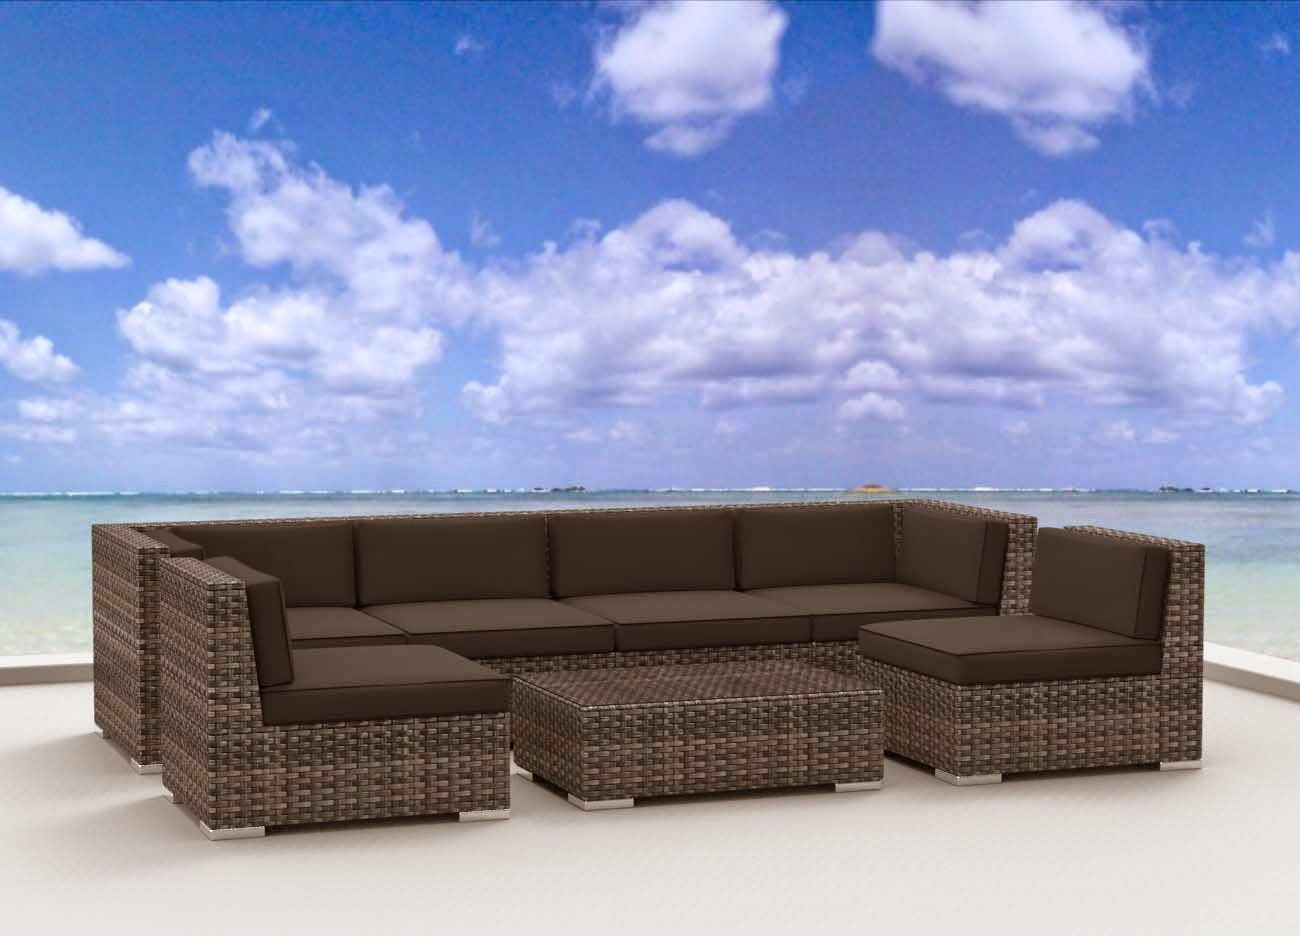 urban furnishing modern outdoor backyard wicker rattan patio  - outdoor patio furniture sofa